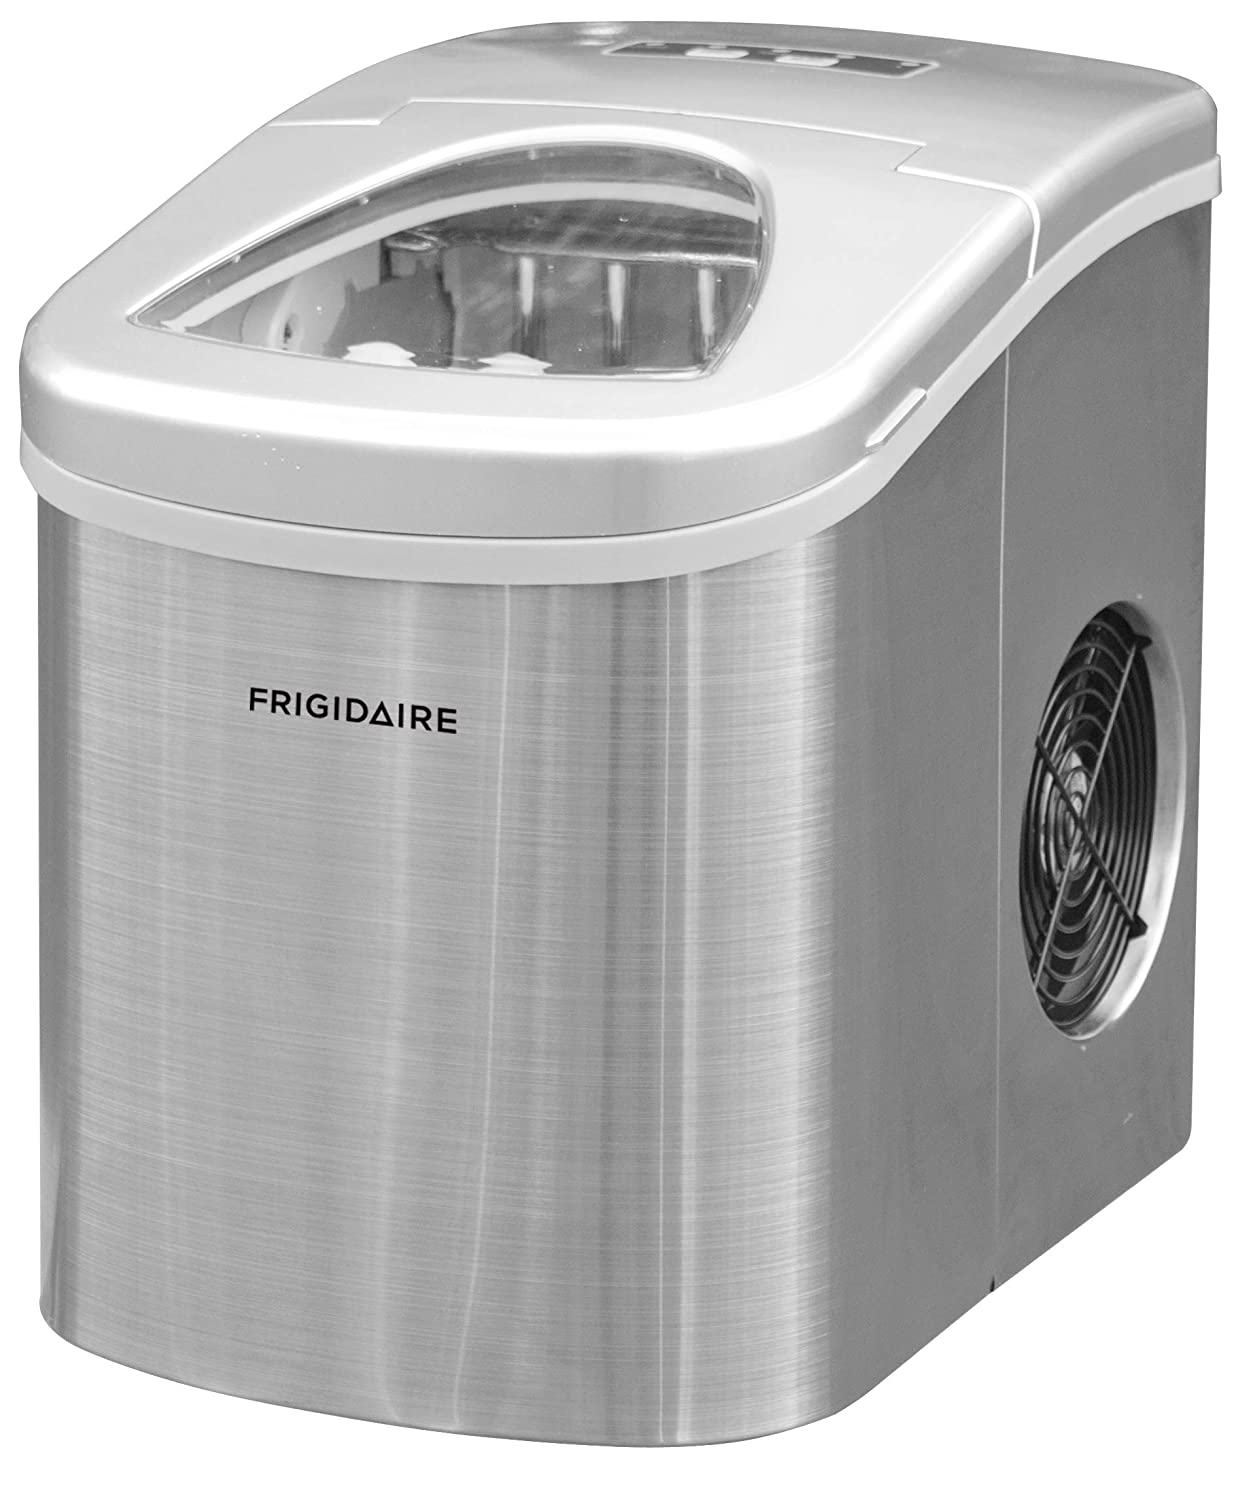 Frigidaire Counter Top Ice Maker, Produces 26 pounds Ice per Day, Stainless Steel with White See-through Lid Curtis ICE117-SS